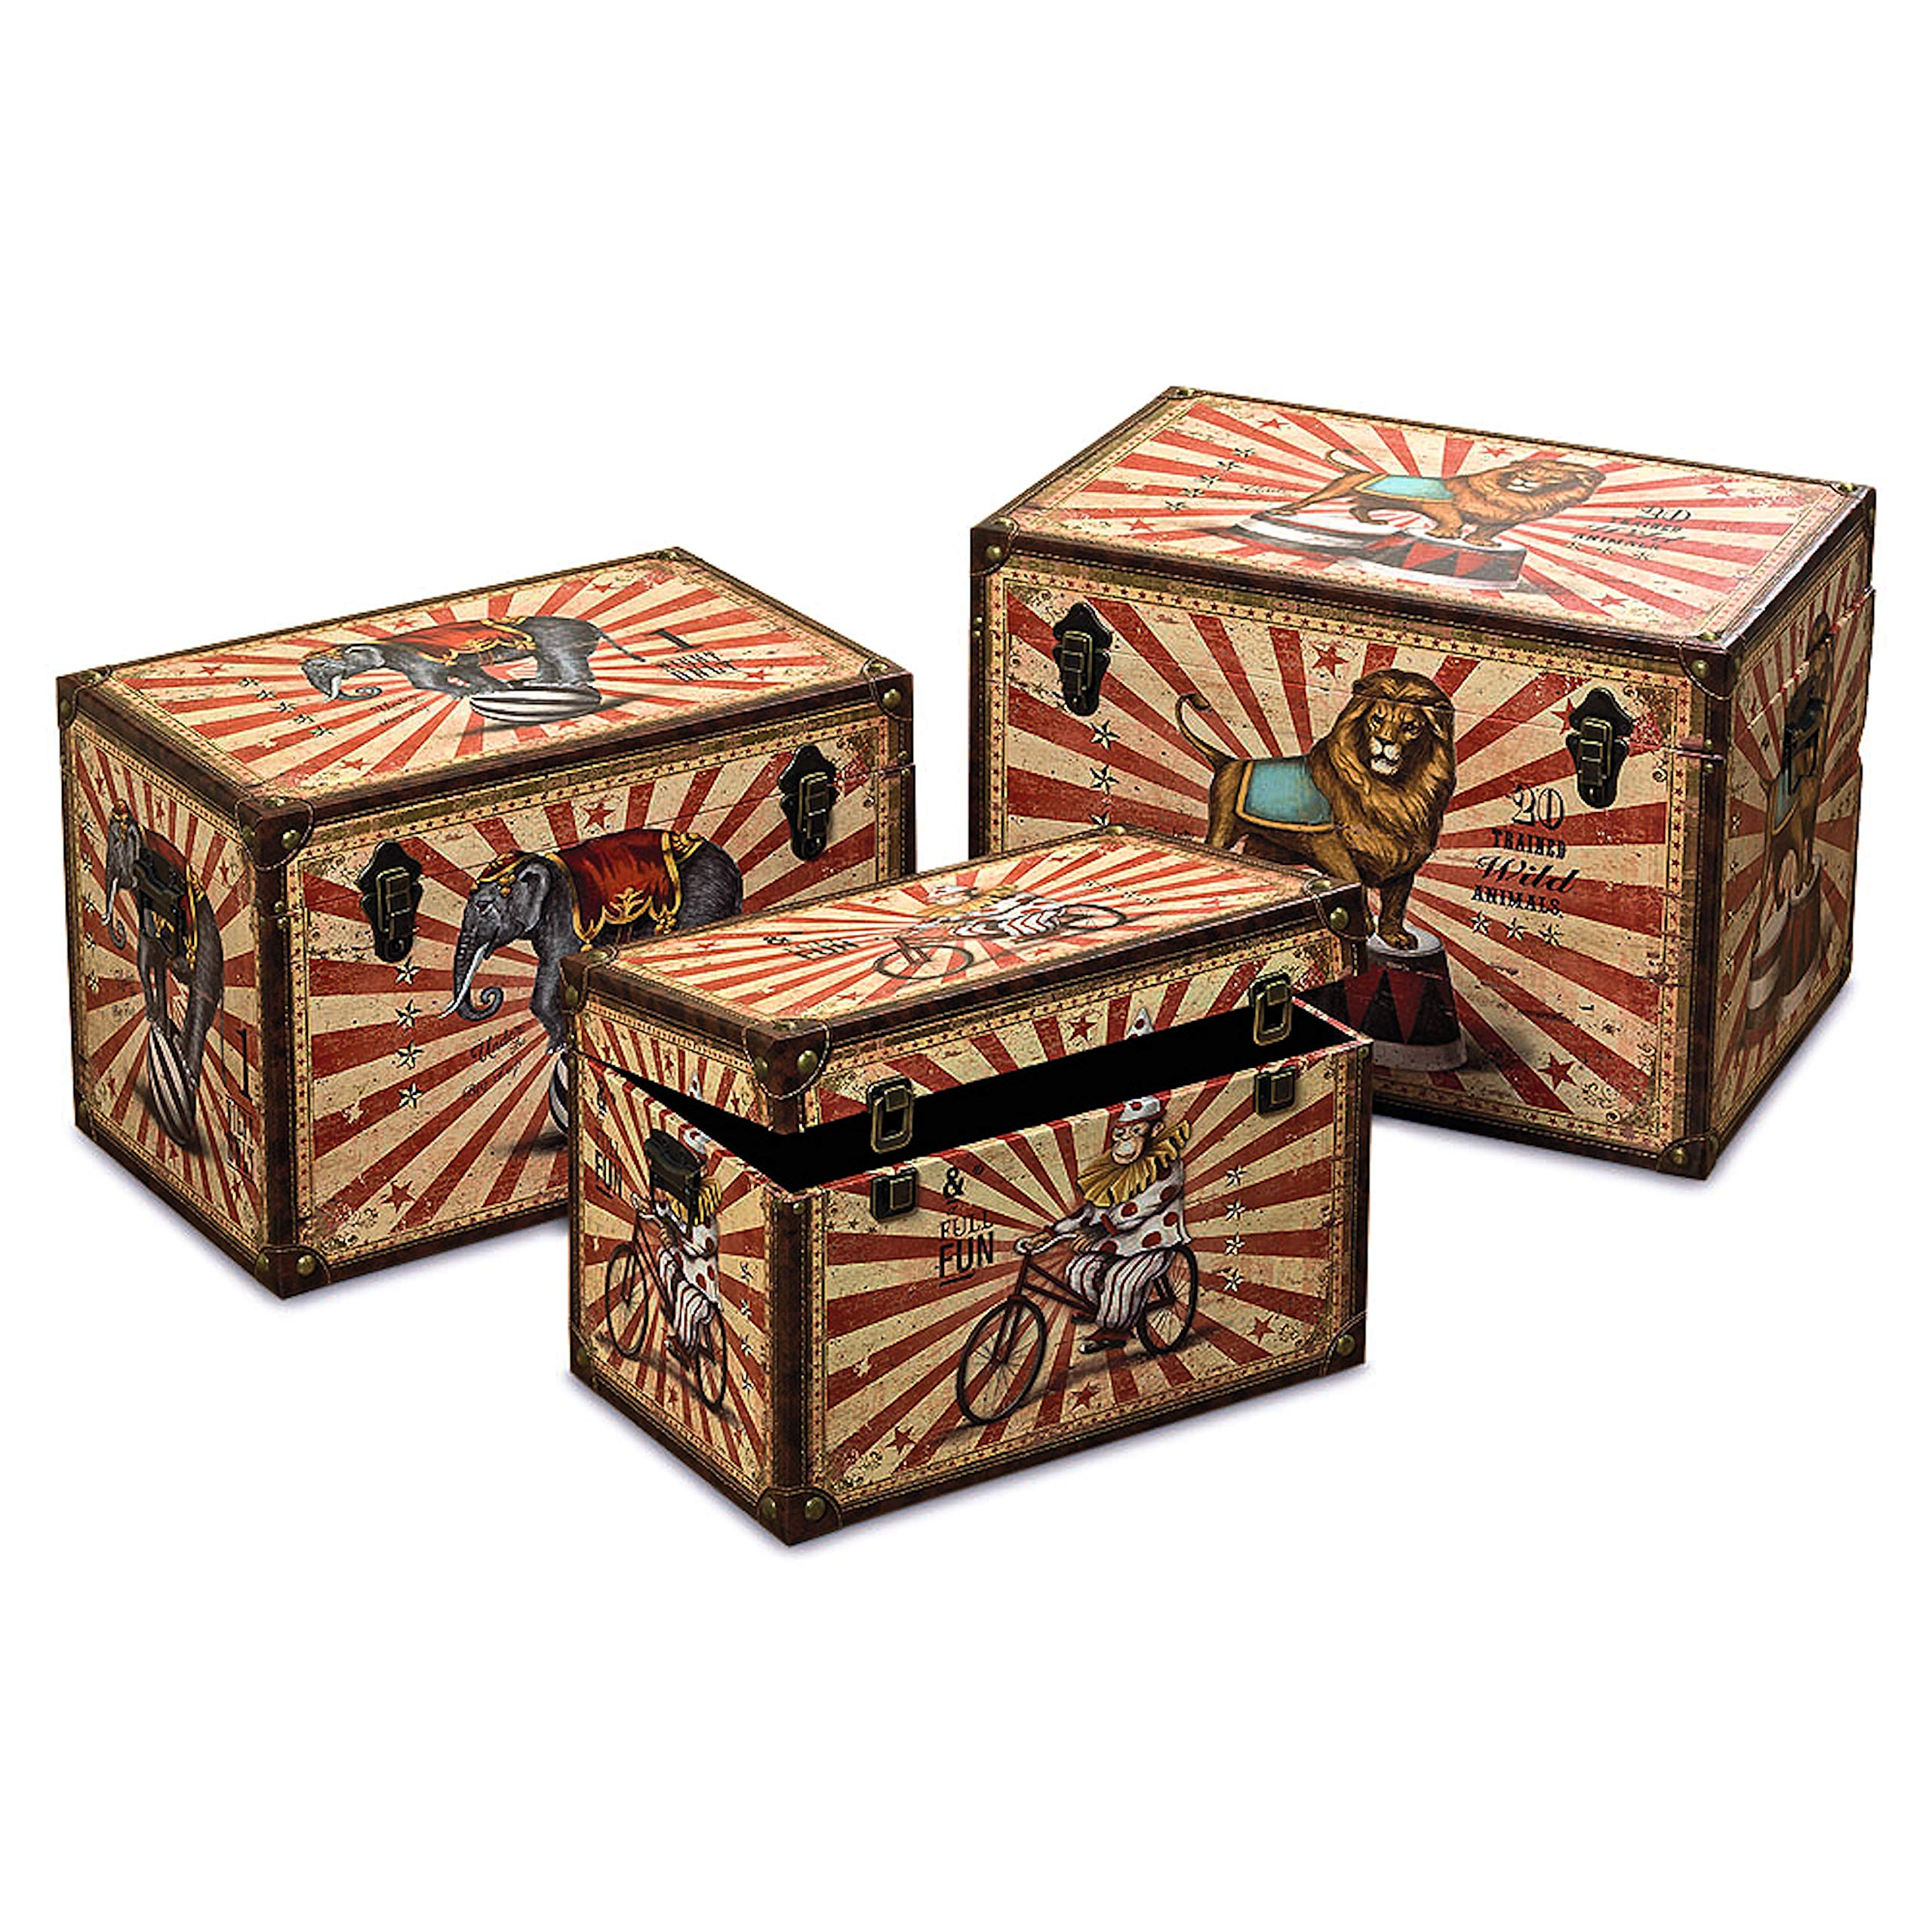 Whole House Worlds The Big Top Circus Animal Travel Trunk Chests, Set of 3, Decorative Storage Boxes, Various Sizes, Faux Leather, Studs, Wood, Lined, Brass Hardware, Various Sizes, By by Whole House Worlds